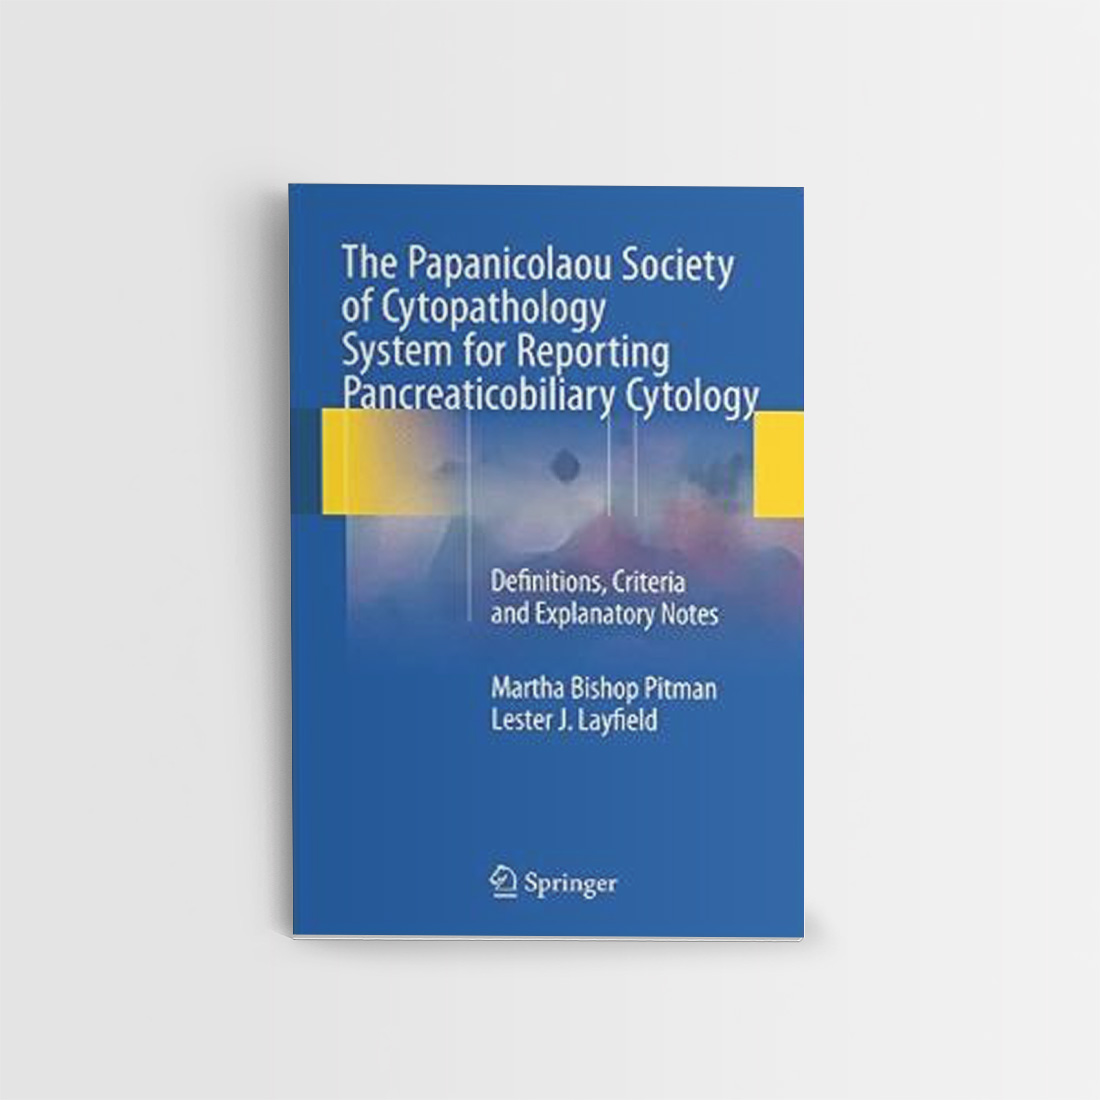 The Papanicolaou Society of Cytopathology System for Reporting ...